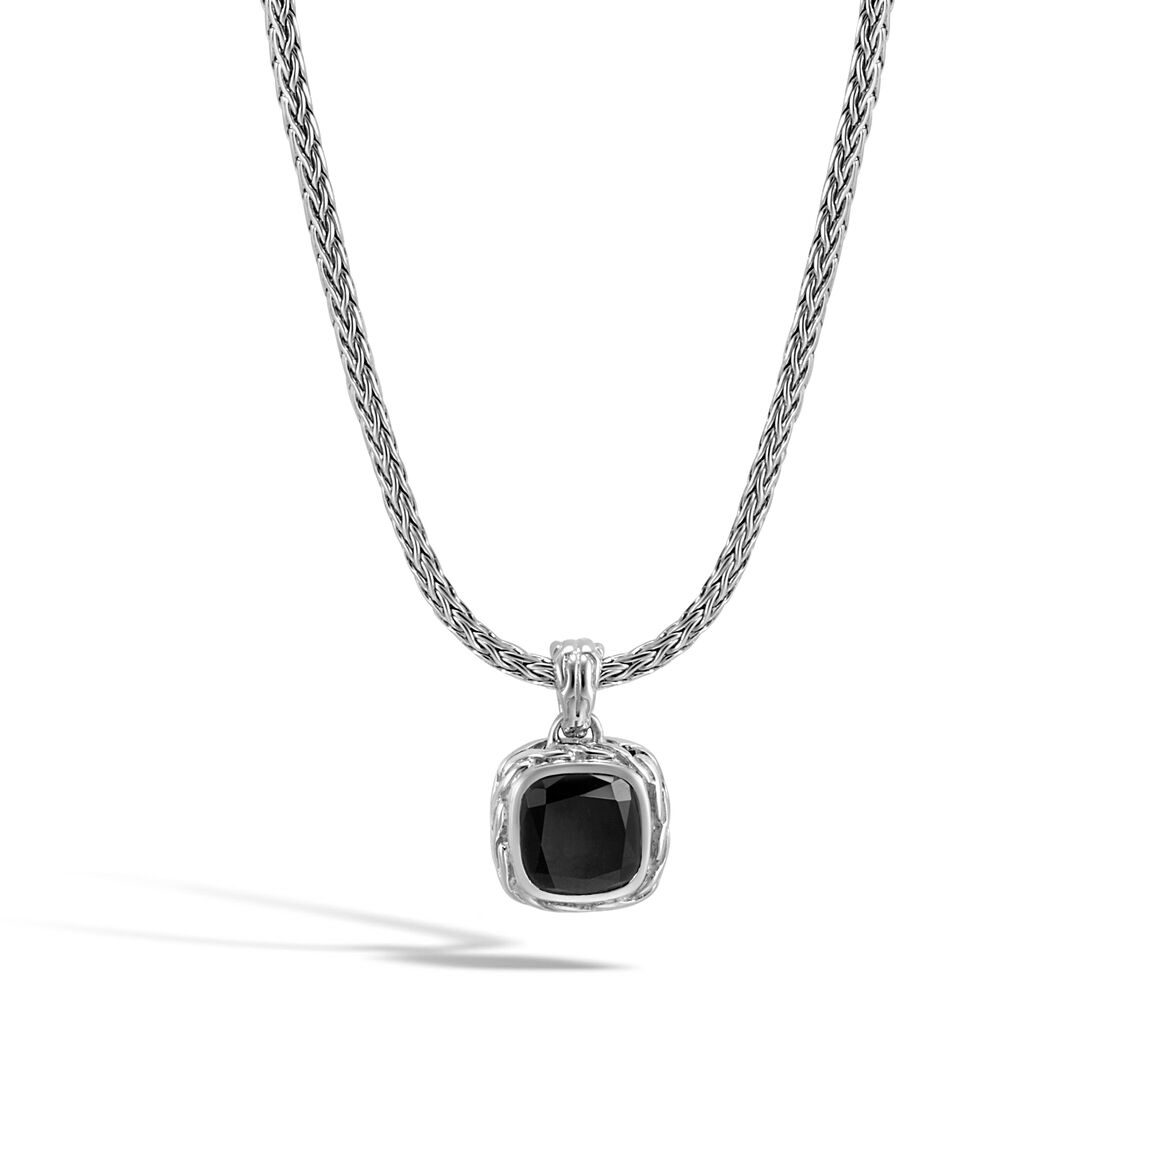 Classic Chain Magic Cut Pendant Necklace, Silver, 8MM Gem